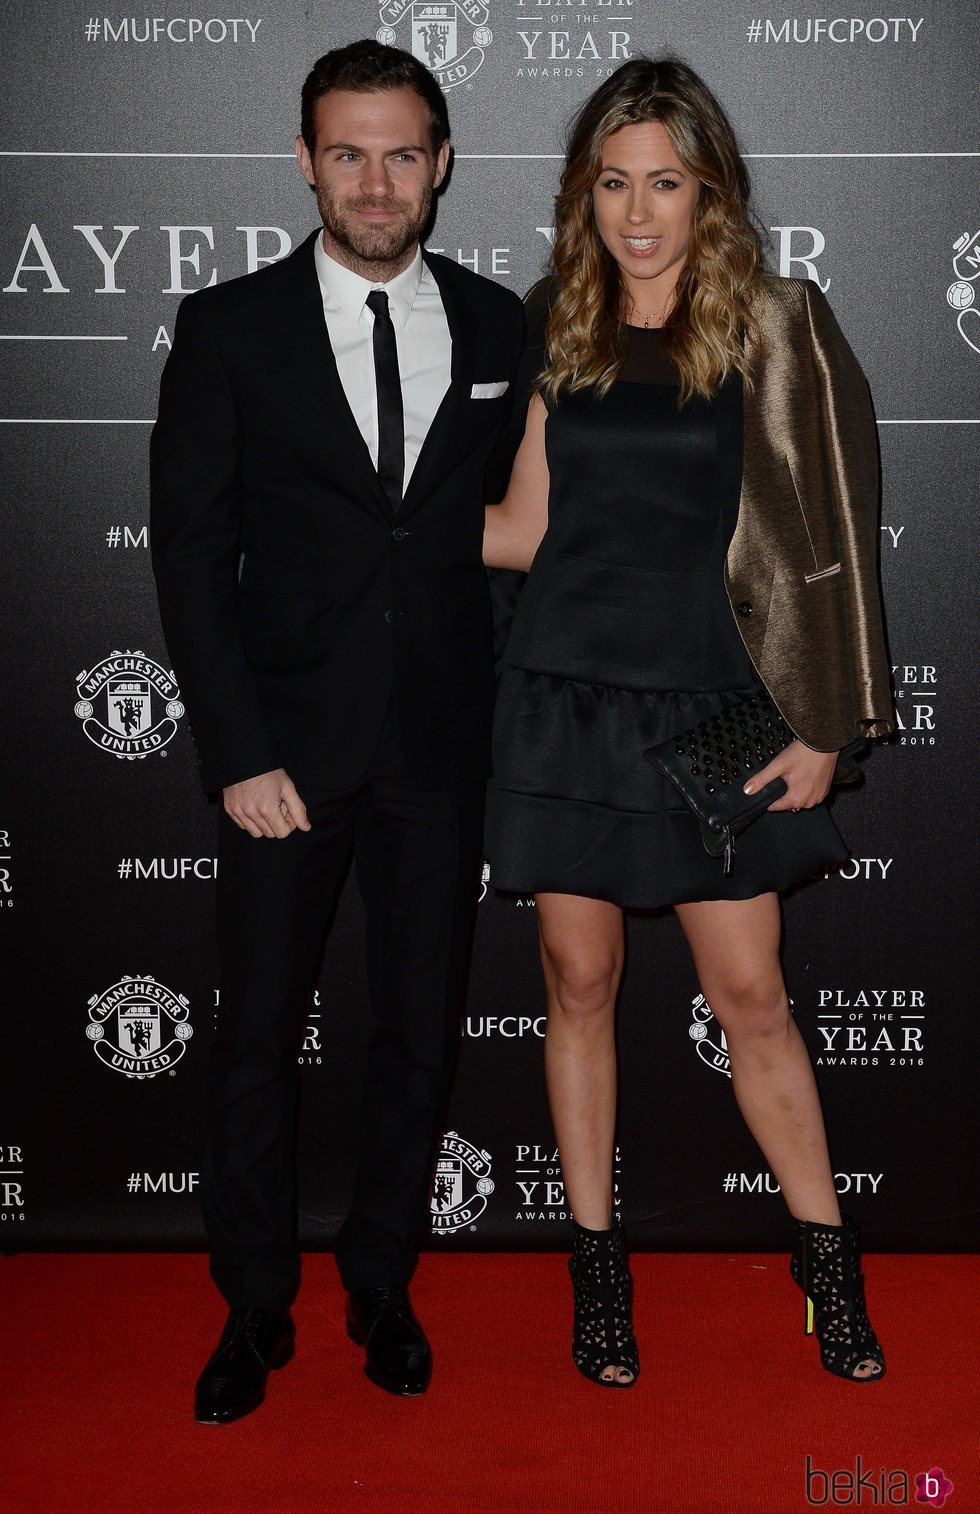 Juan Mata y Evalina Kamph en la gala Manchester United Player of The Year Awards 2016